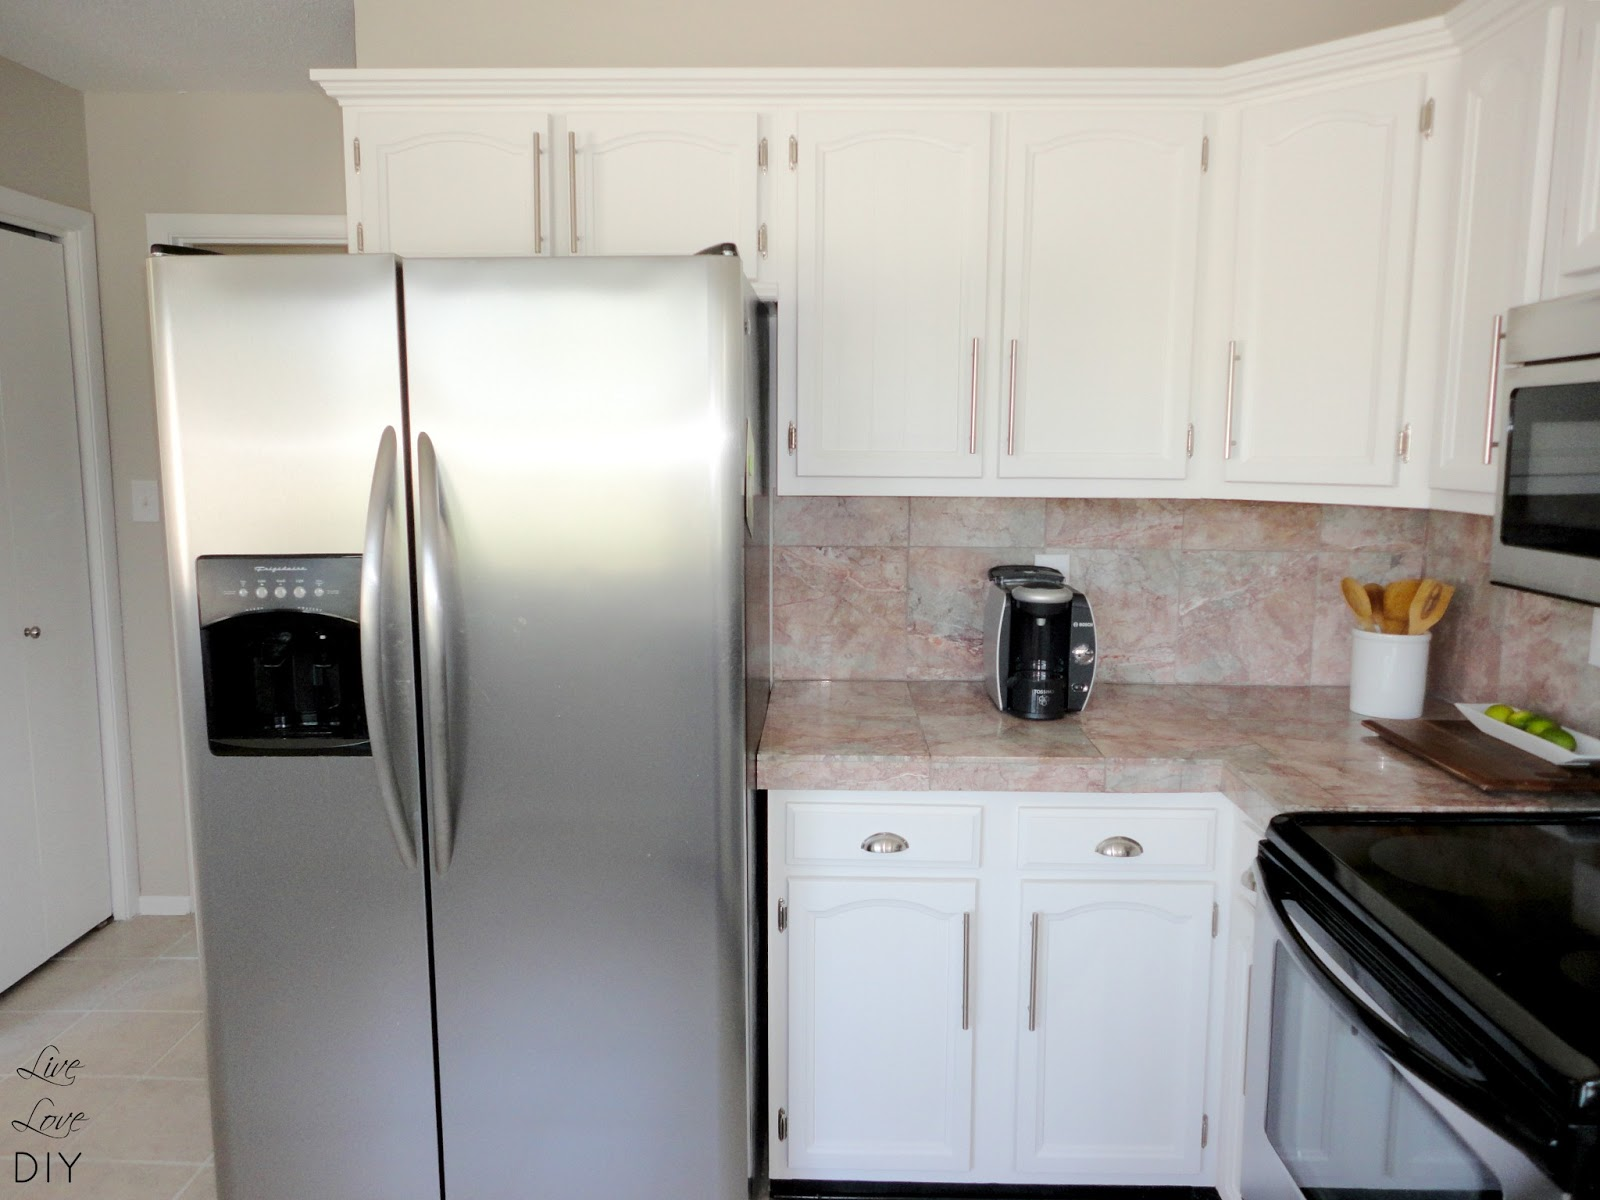 Uncategorized Painting Kitchen Cabinets White livelovediy how to paint kitchen cabinets in 10 easy steps your the way an tutorial anyone can